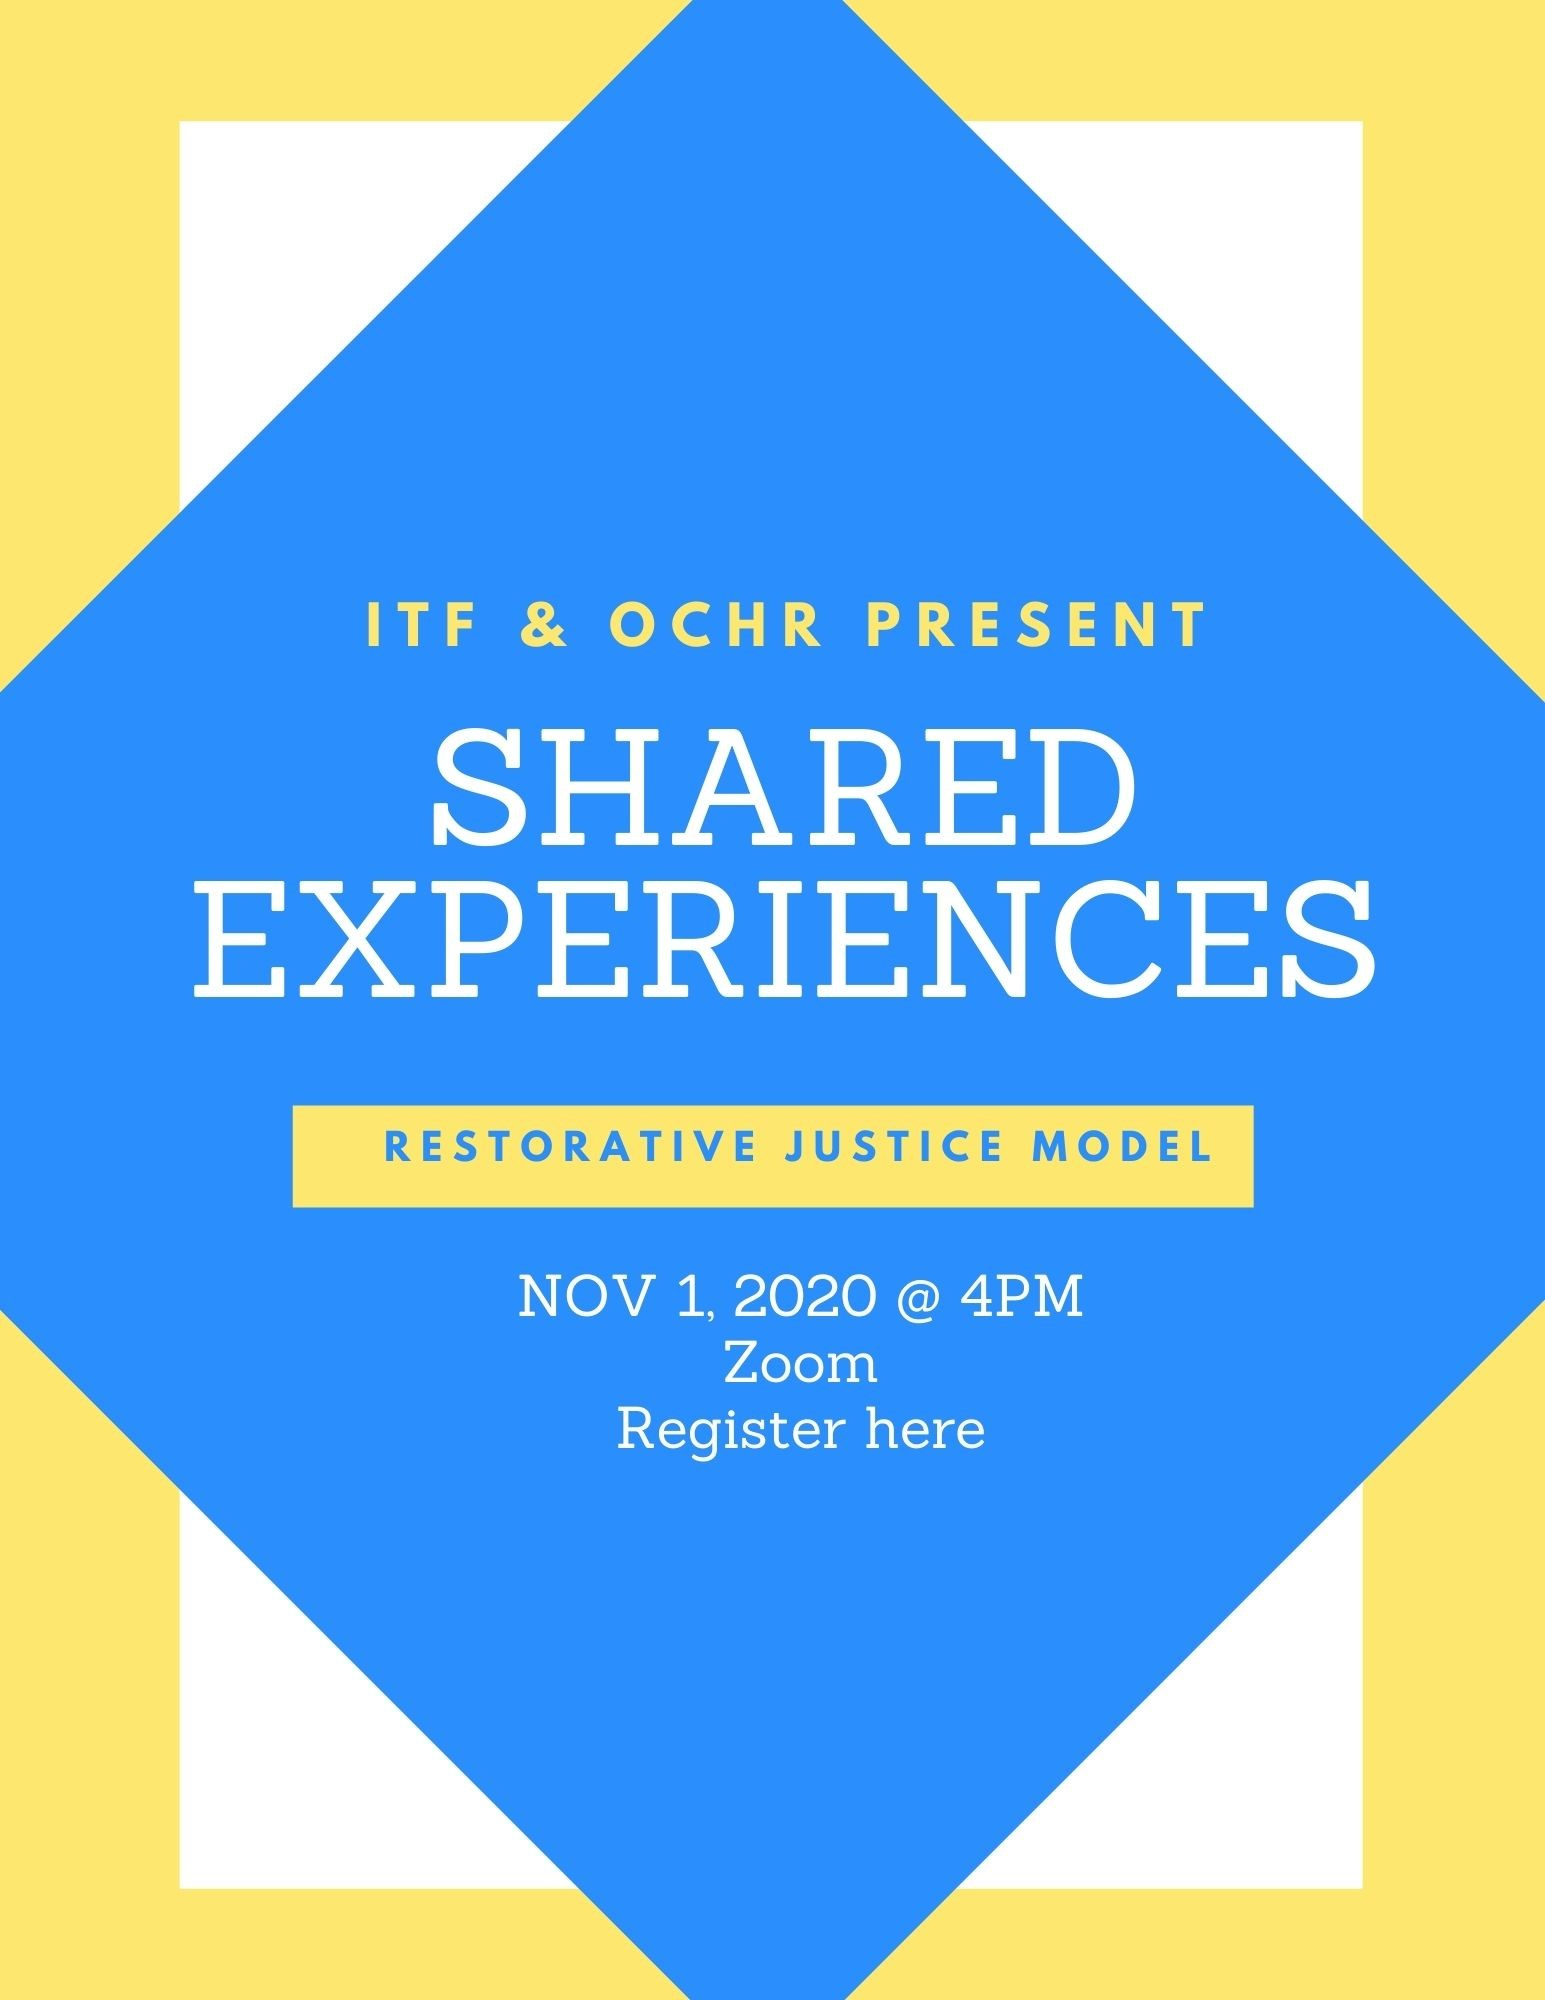 ITF in Collaboration with OC Human Relations Present Shared Experiences